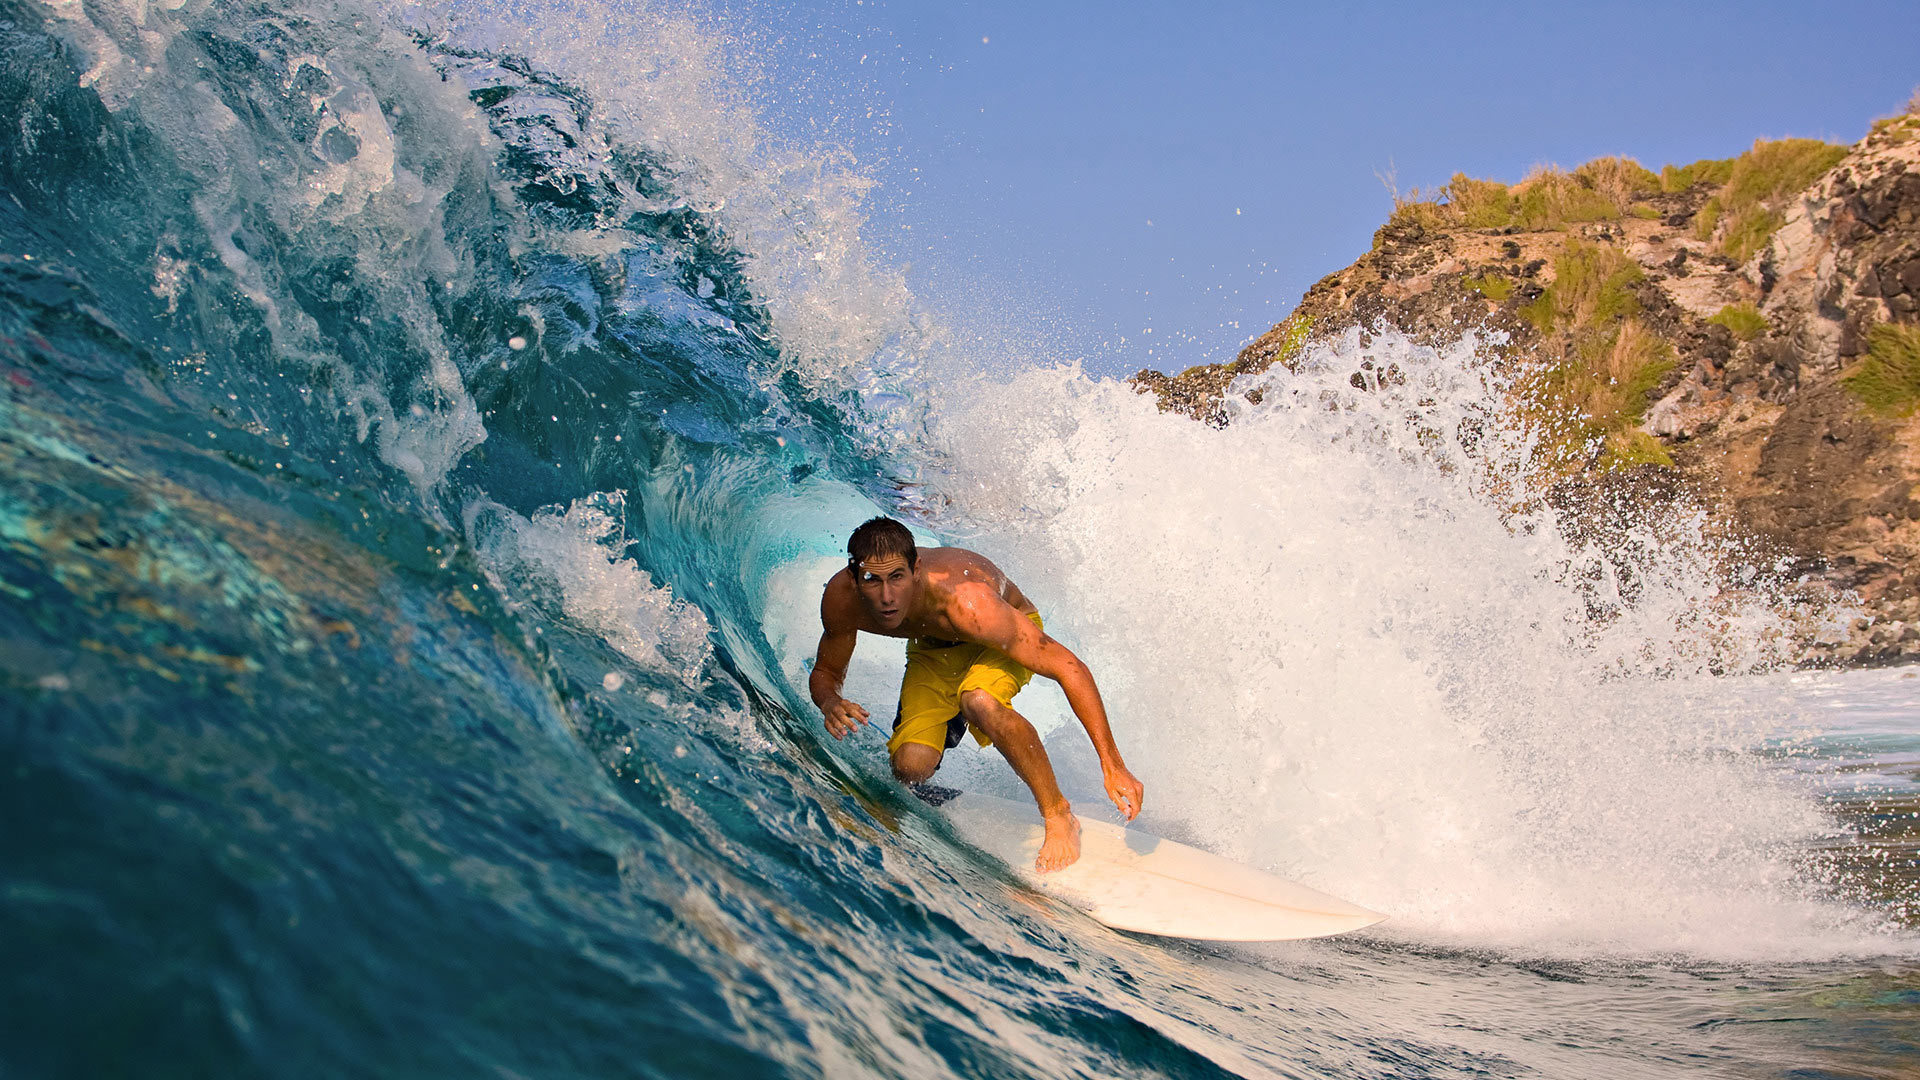 The best surfing wallpapers 1920x1080